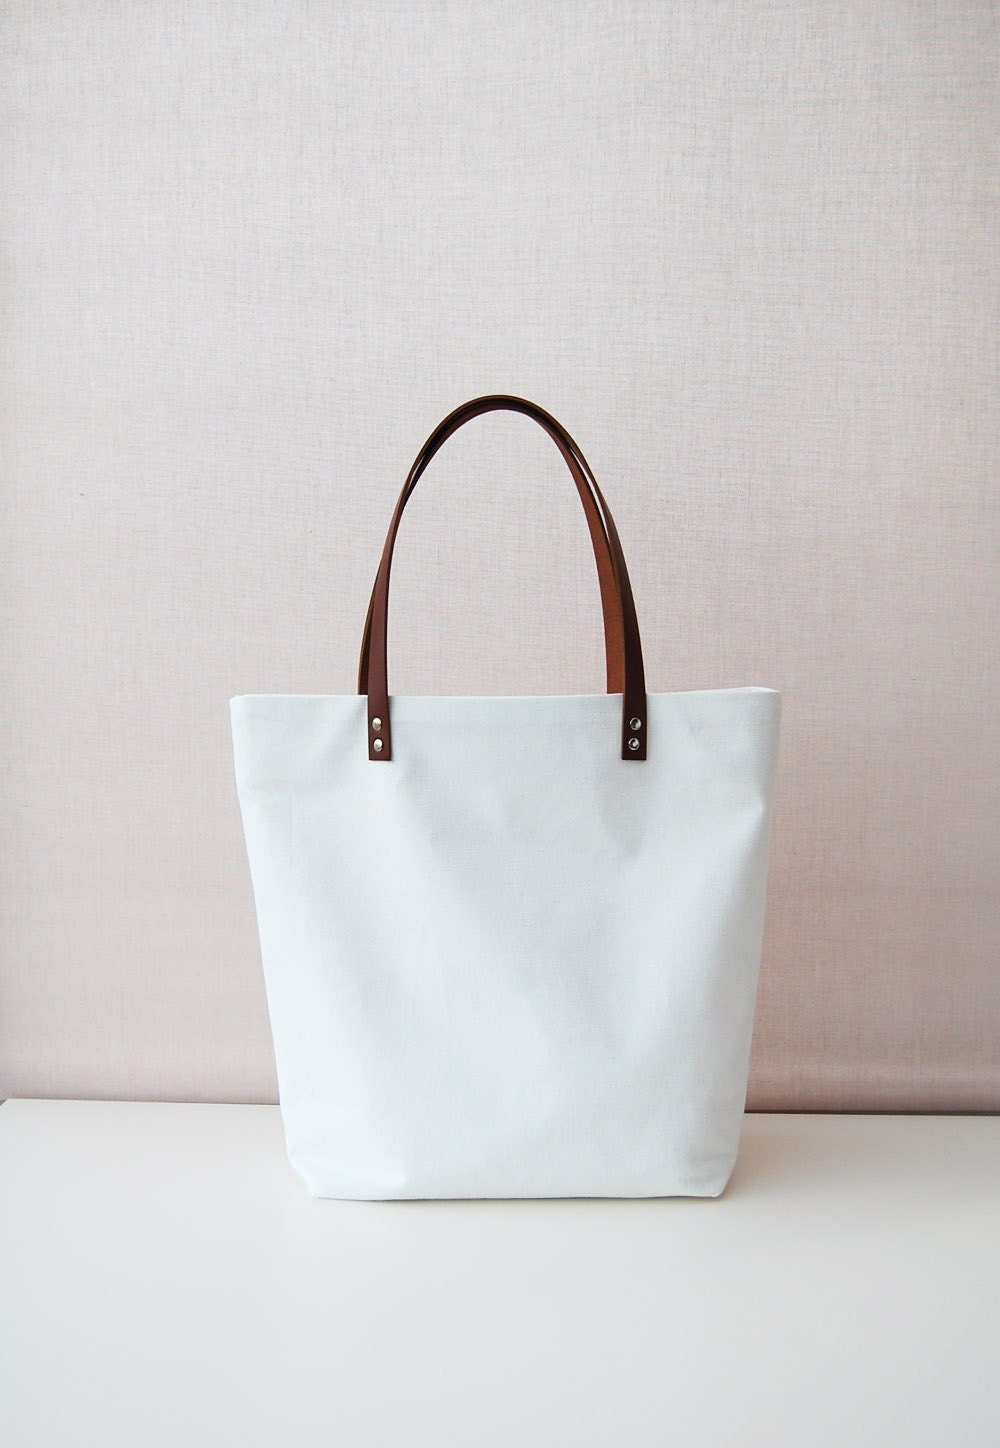 White Canvas tote bag with leather handles